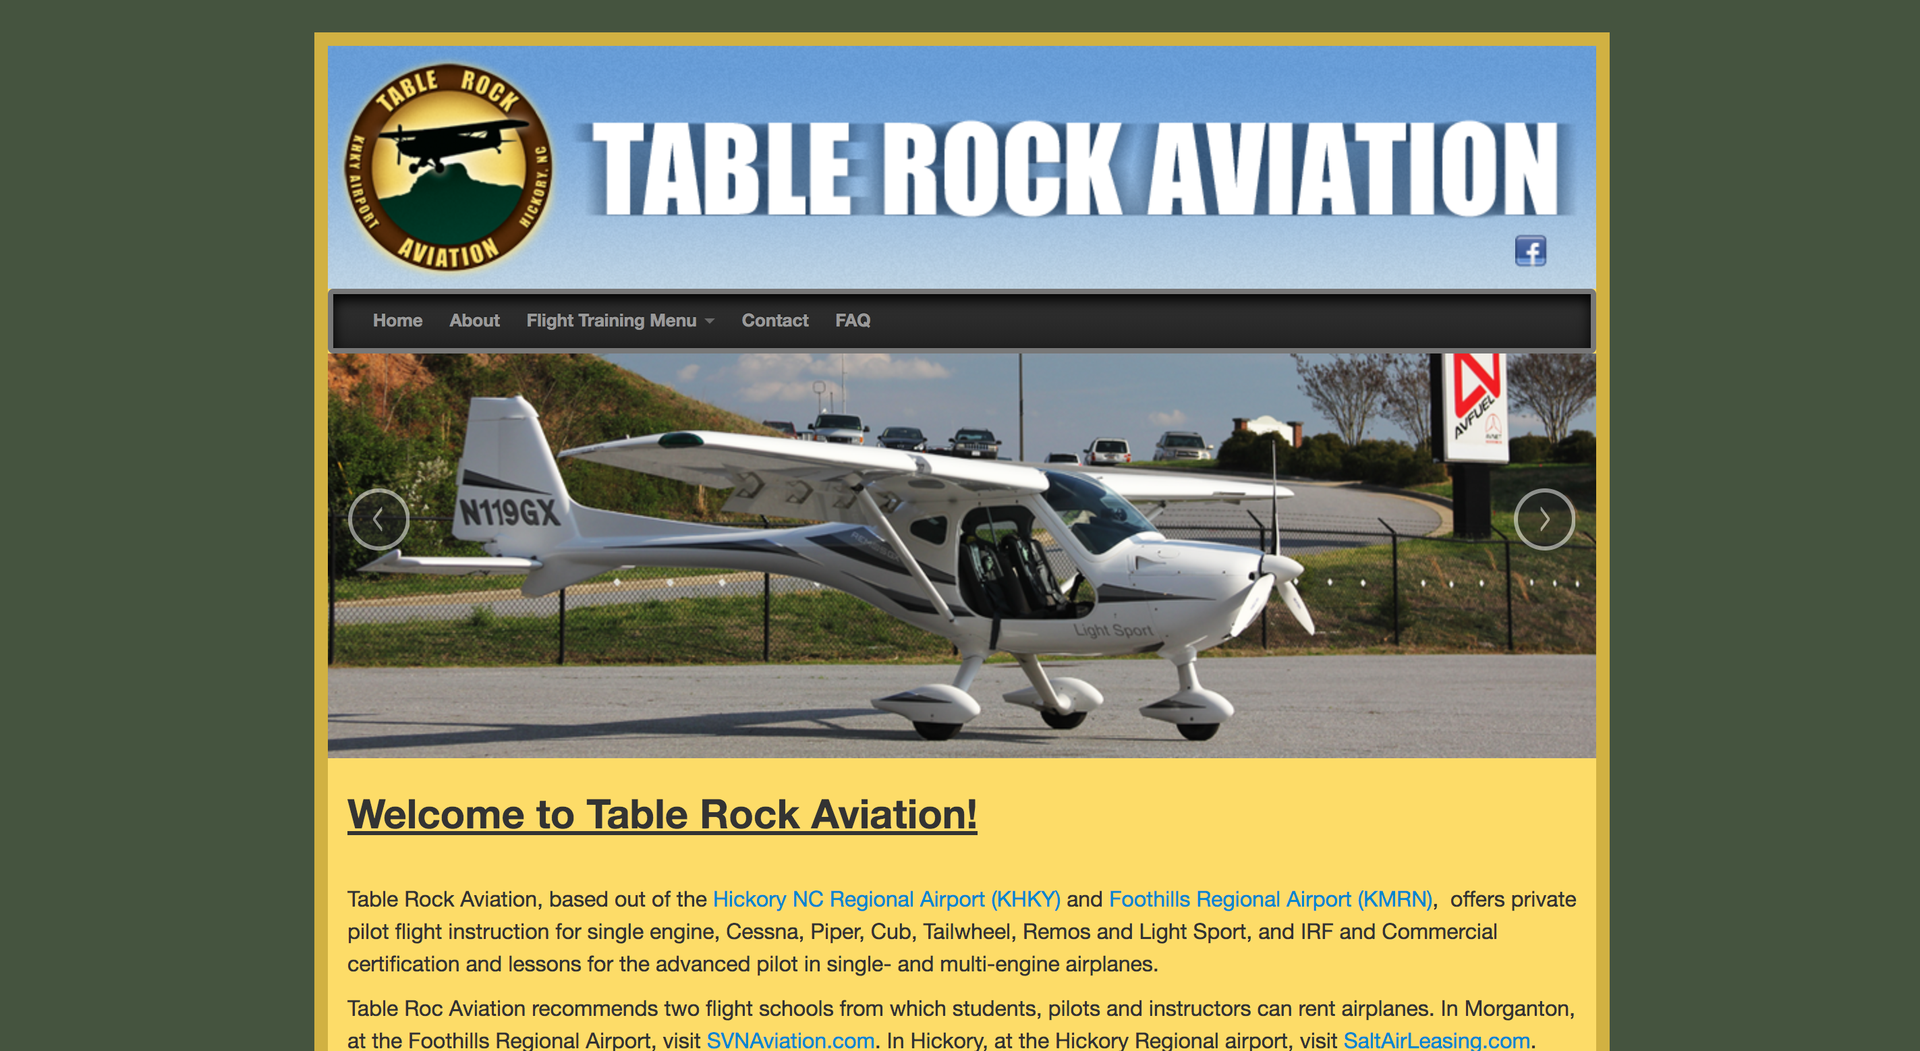 Table Rock Aviation website homepage